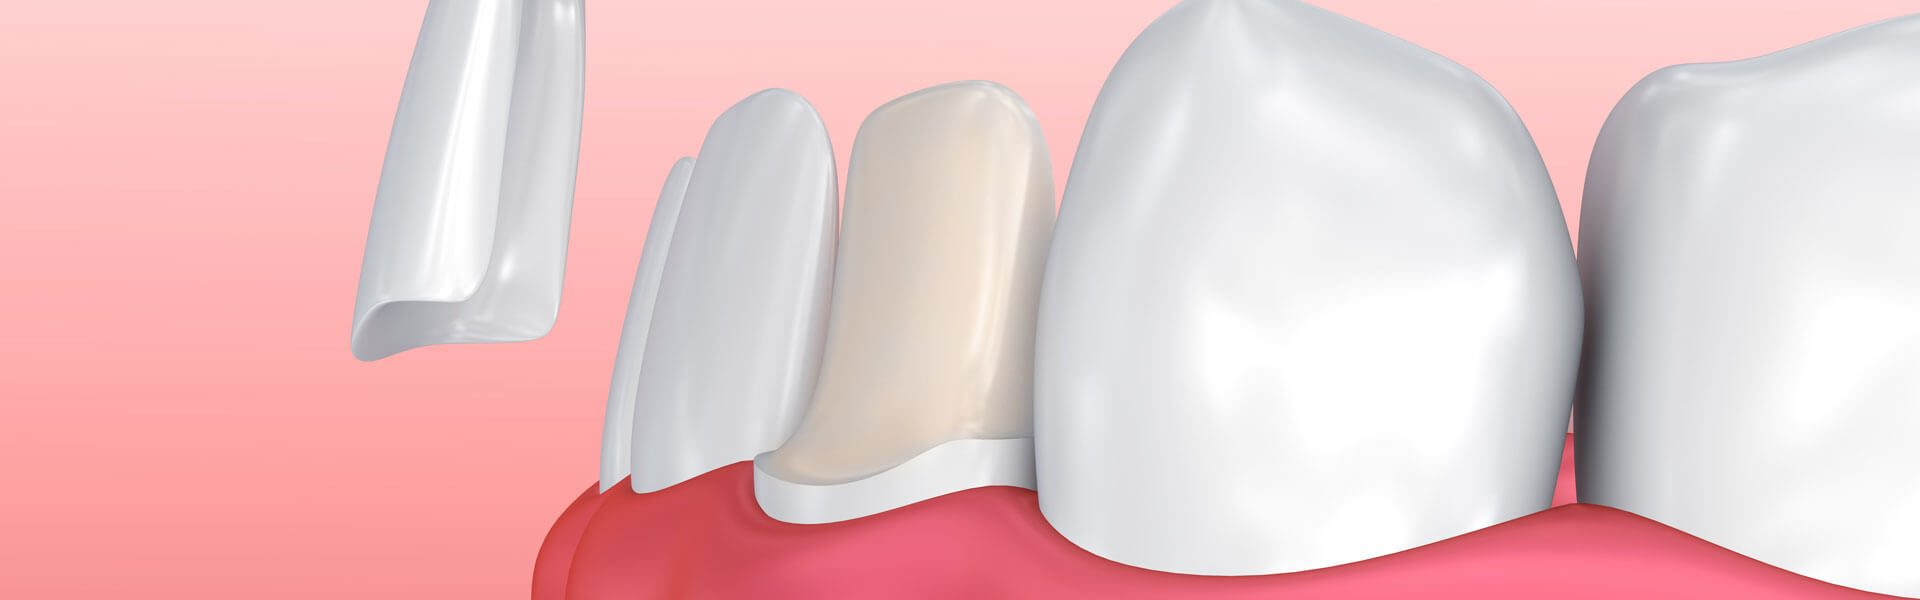 Dental Conditions Treated with Veneers